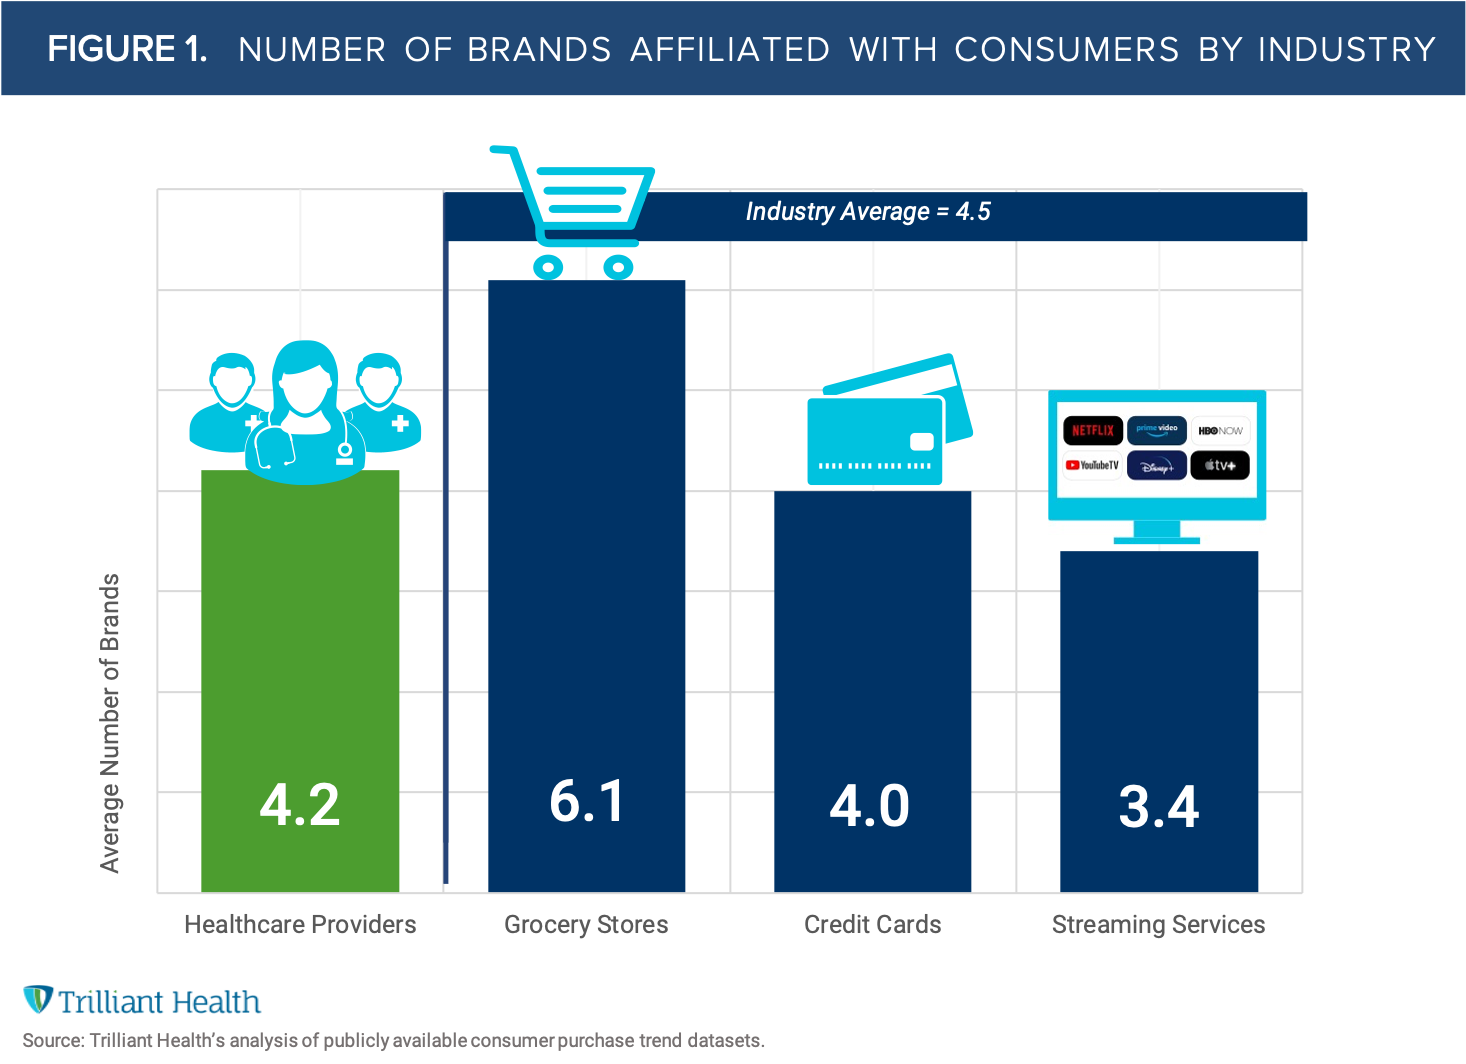 FIGURE 1 - Number of Brands Affiliated with Consumers by Industry_v2